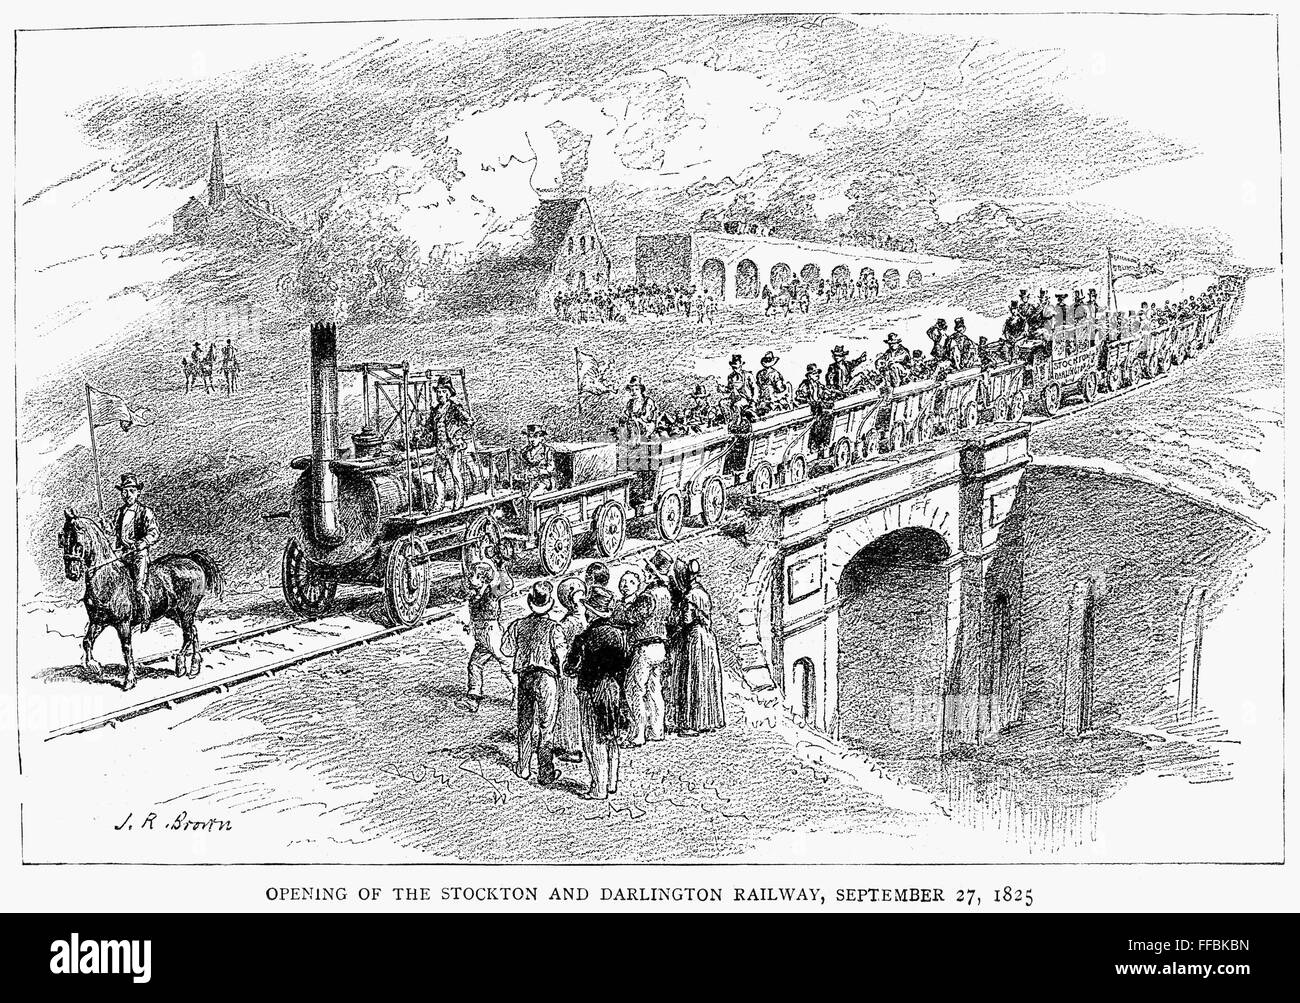 england-railway-1825-nopening-of-the-sto